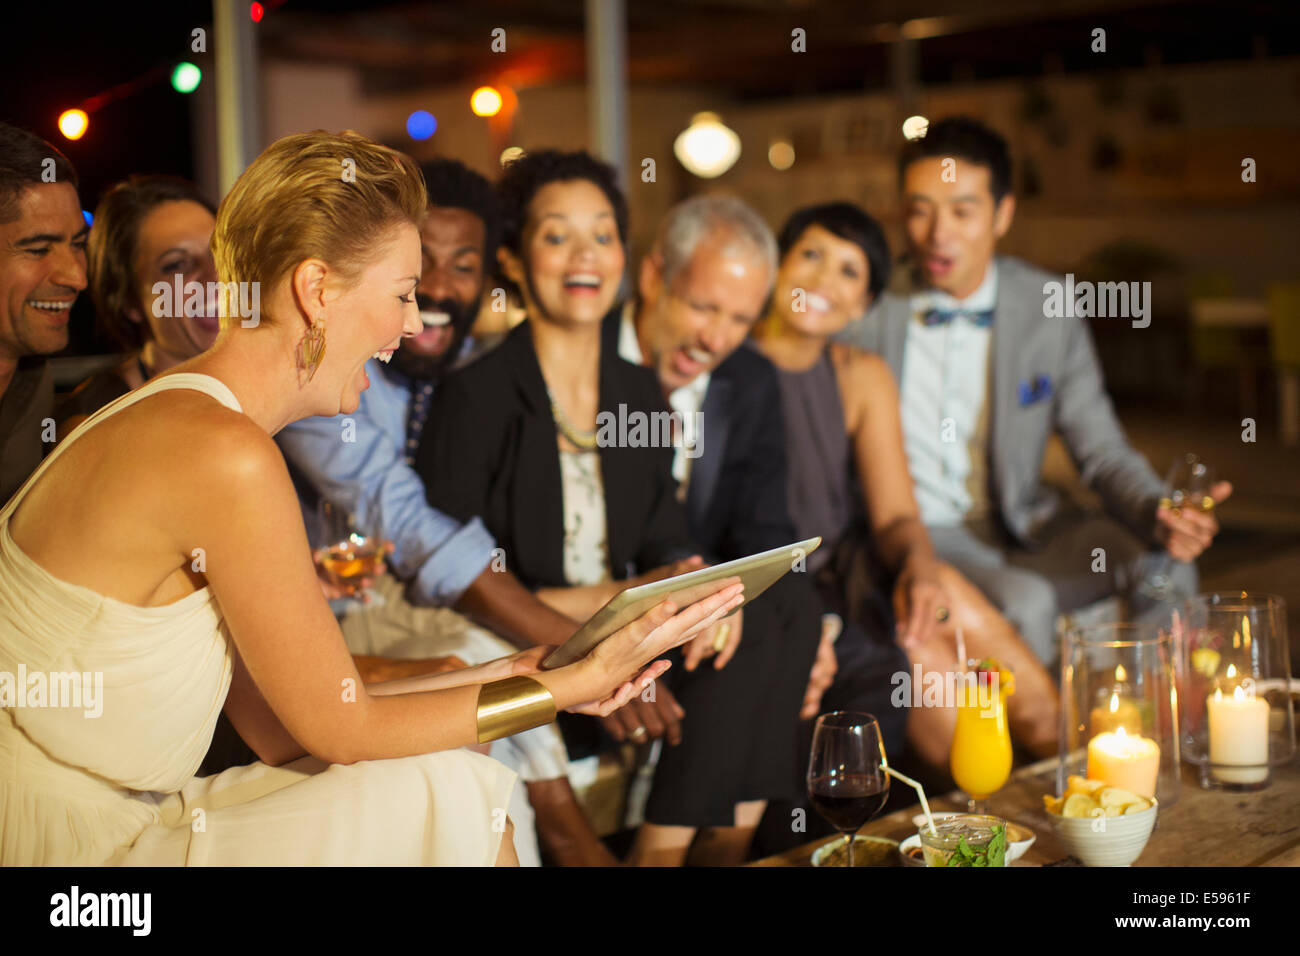 Friends using digital tablet at party - Stock Image